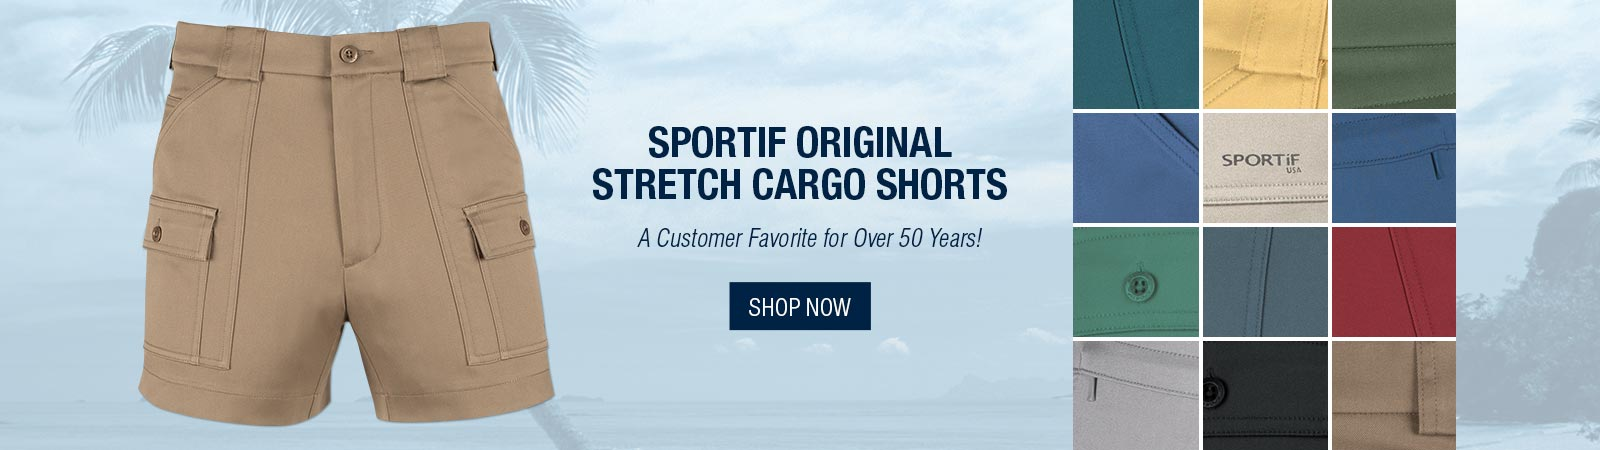 Sportif Original Stretch Cargo Shorts